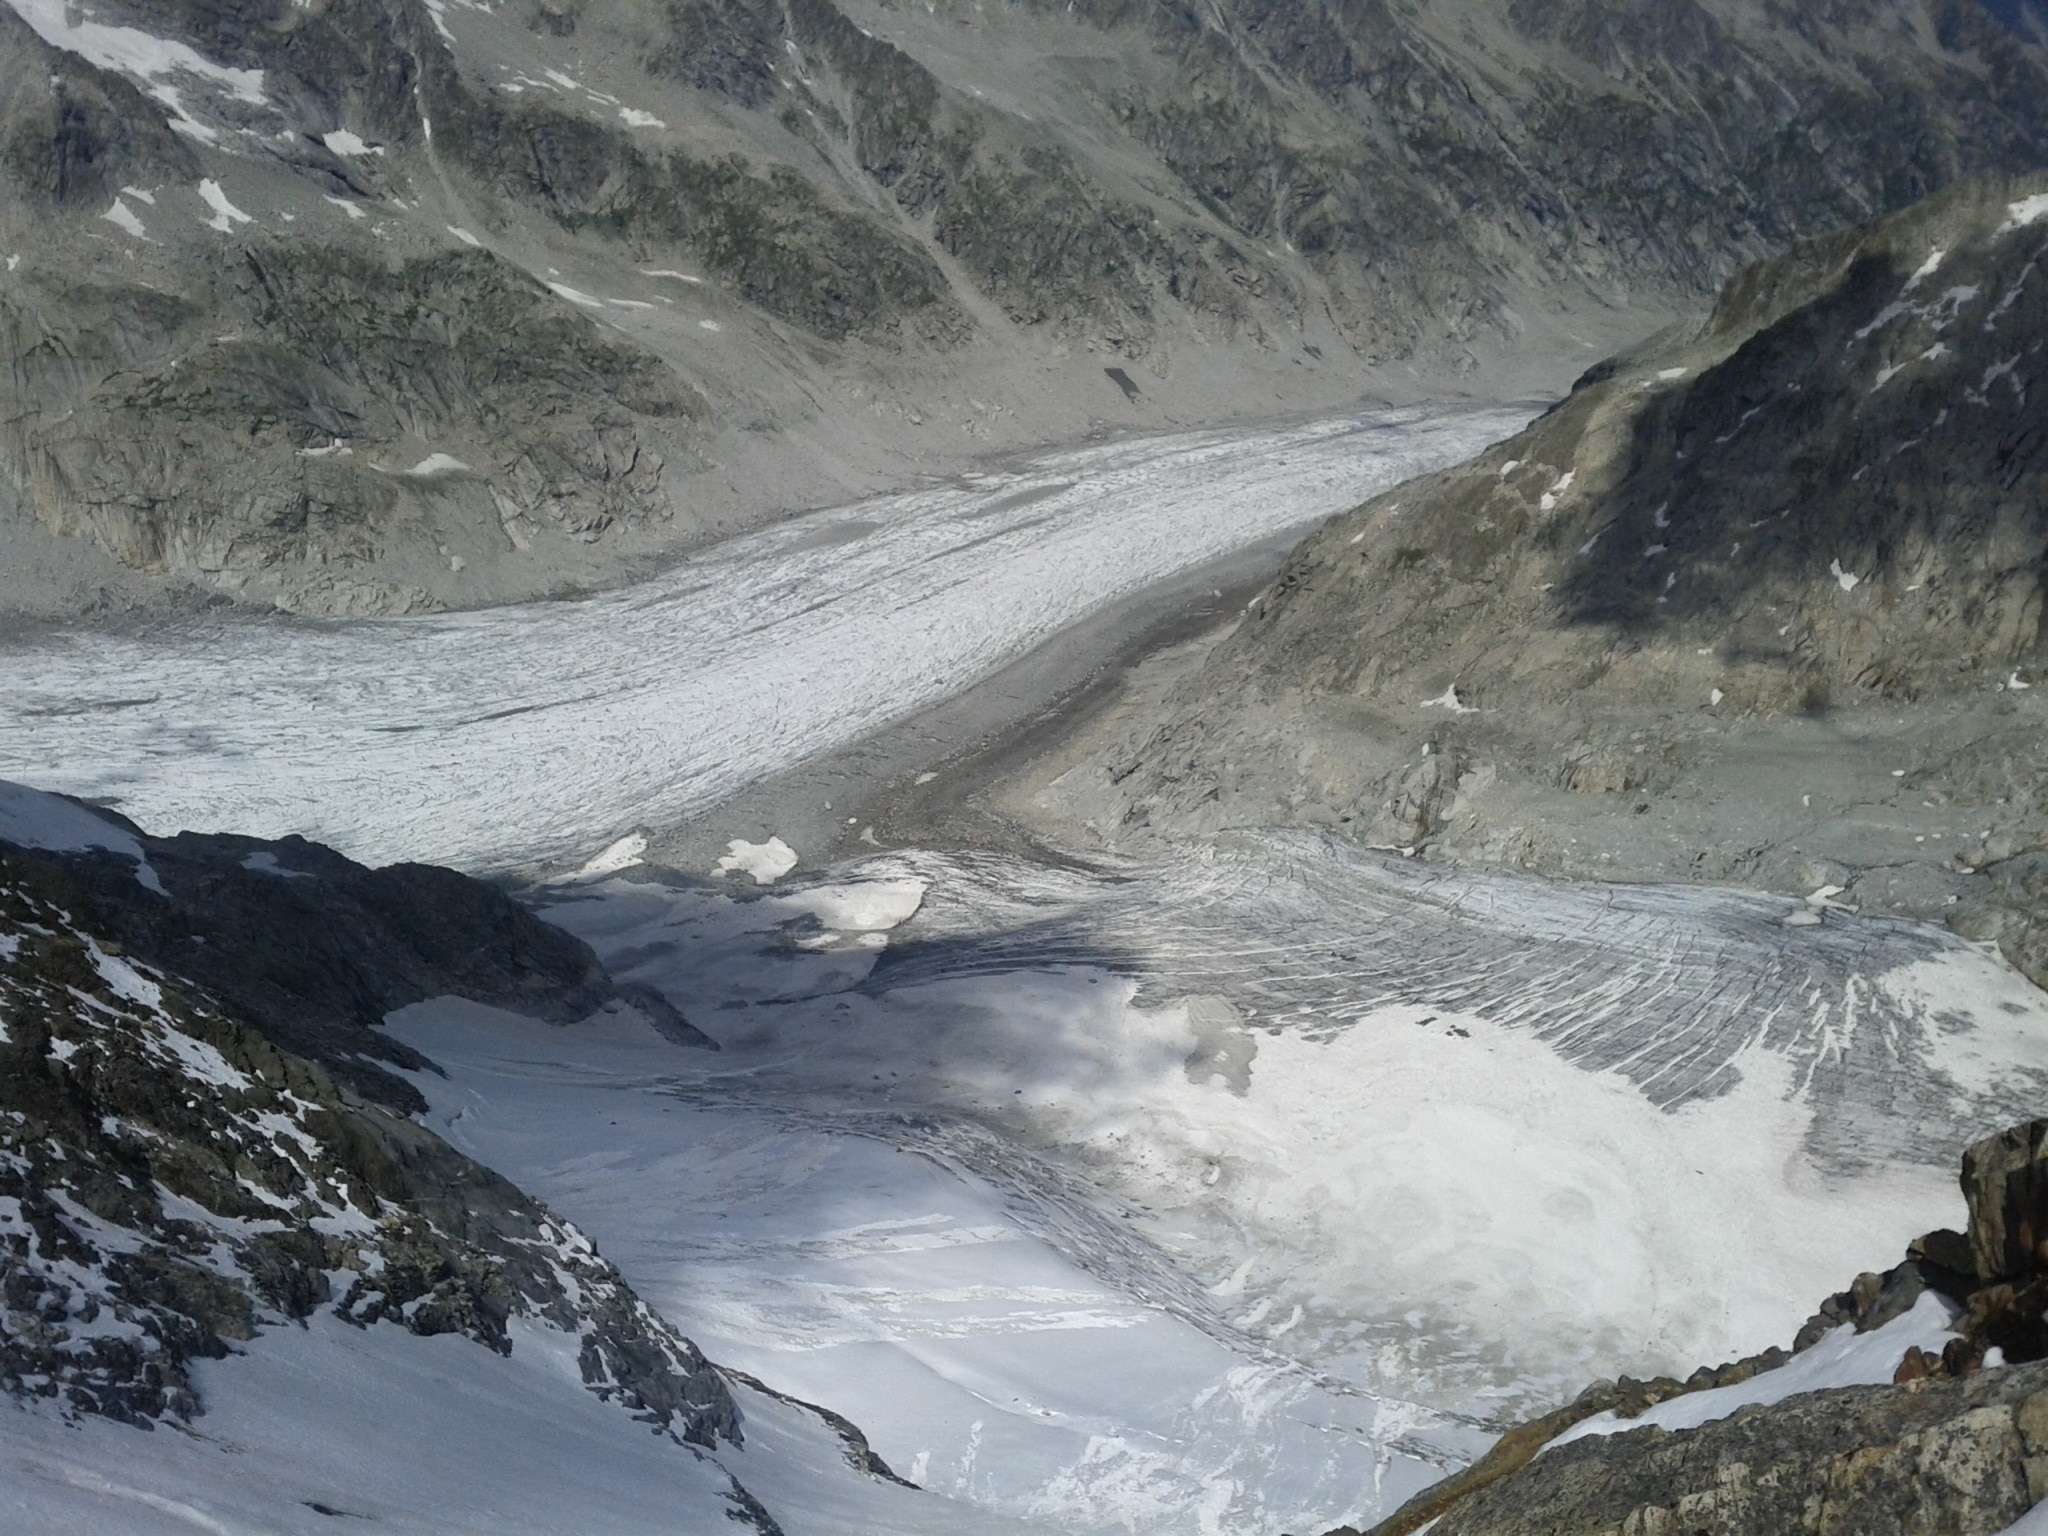 This glacier, the Glacier del Forno, just split into two glaciers about three years ago. It has lost 200 meters in thickness alone in the last 100 years.